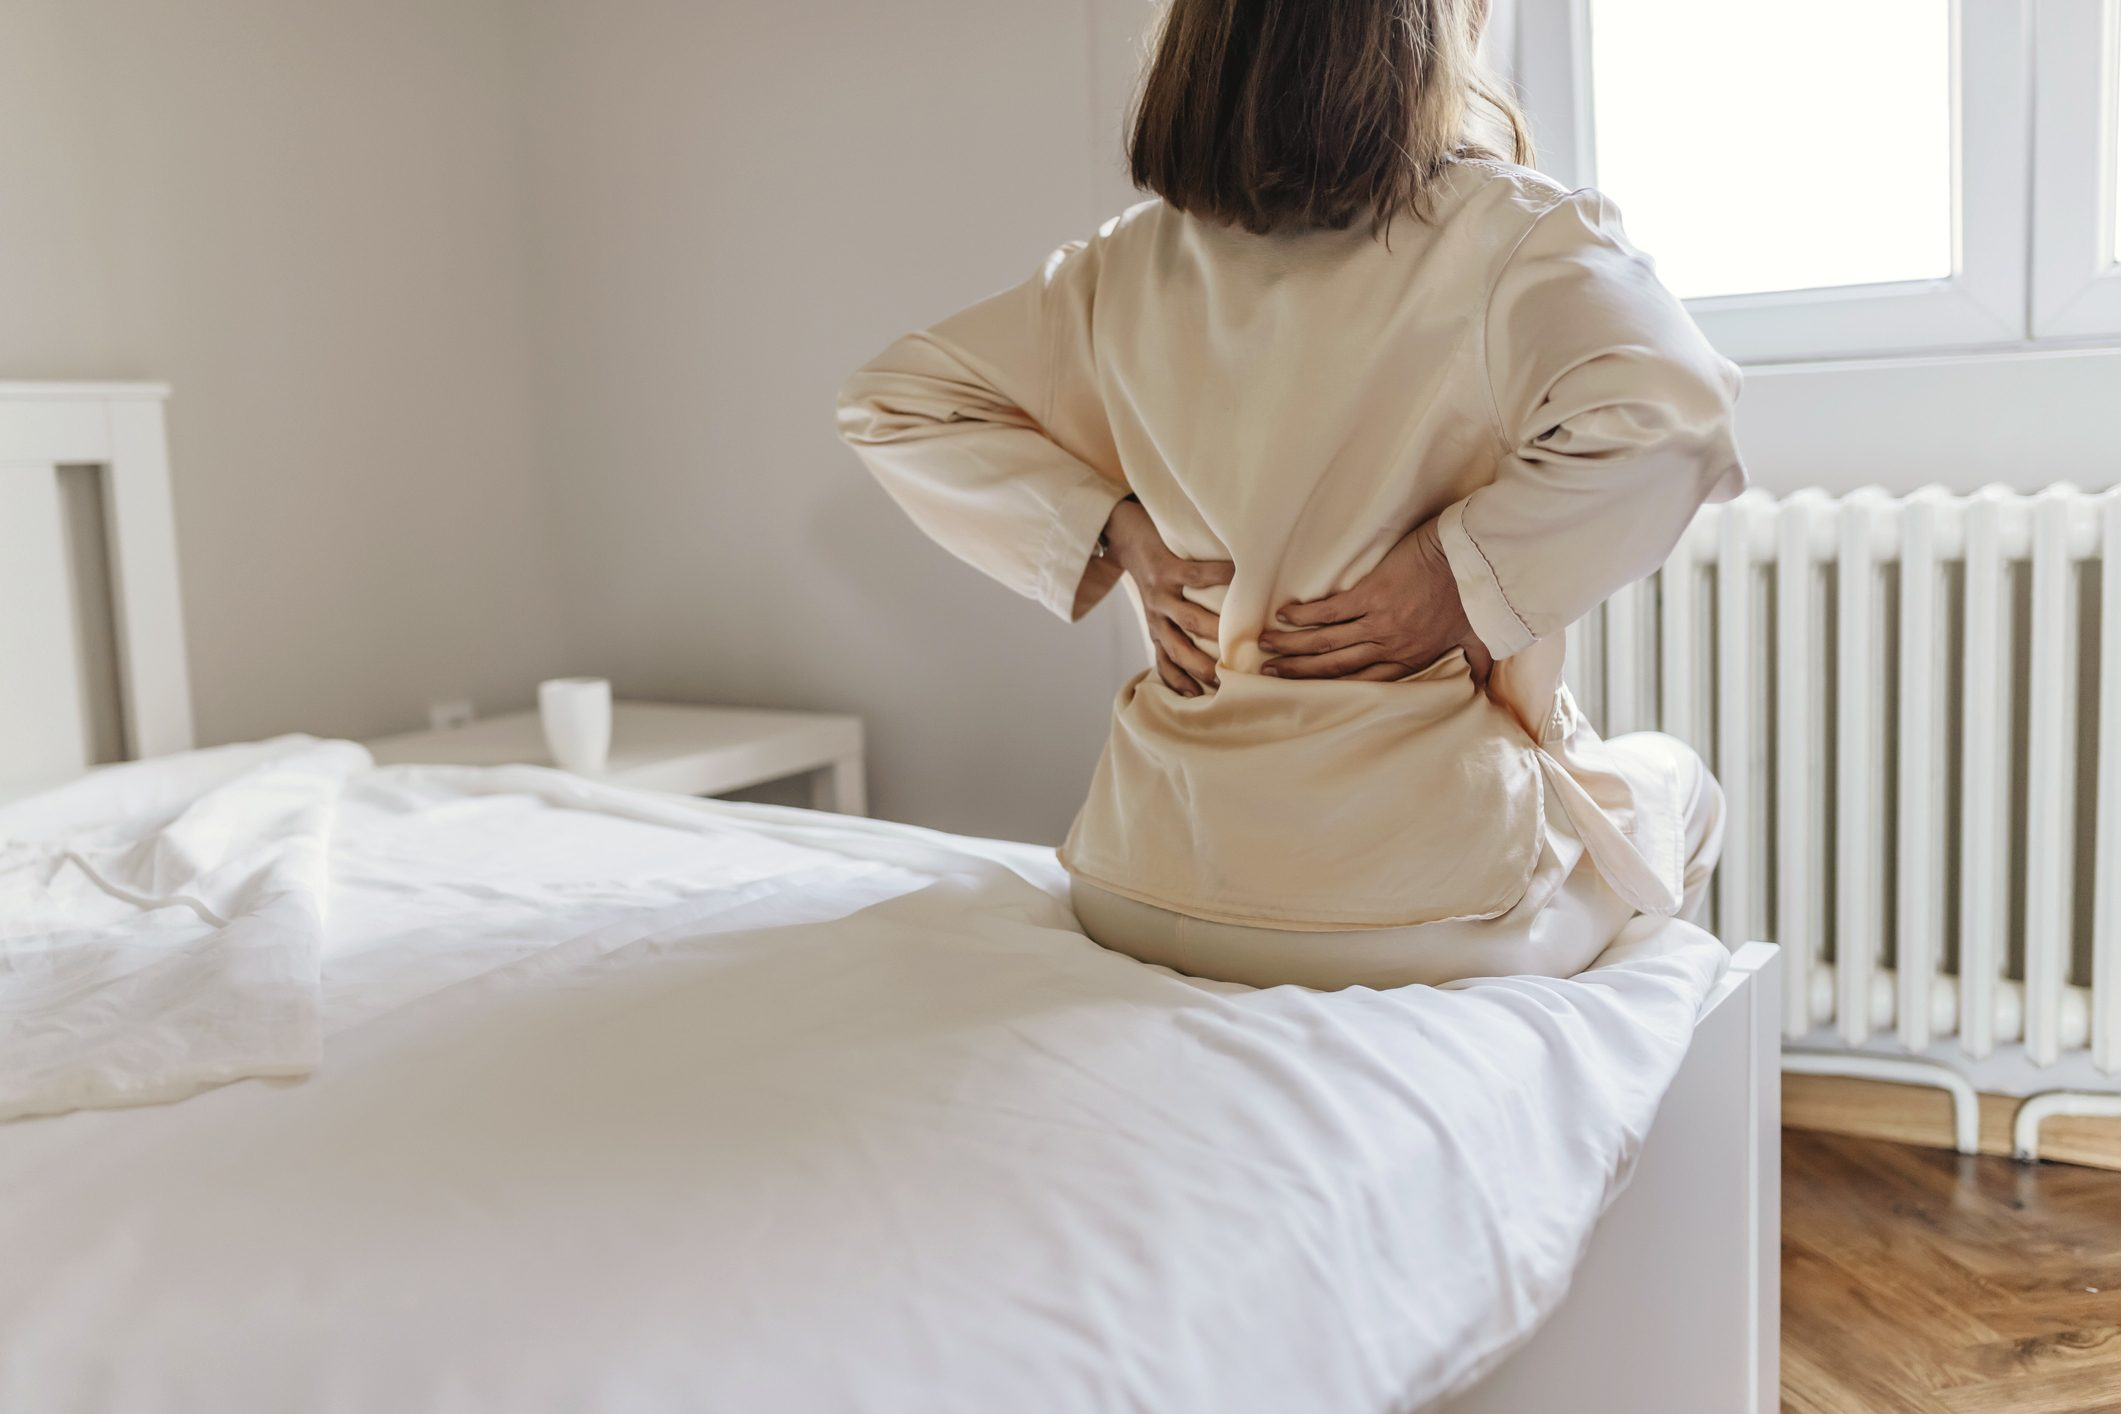 woman sick with aches and pains or myalgia